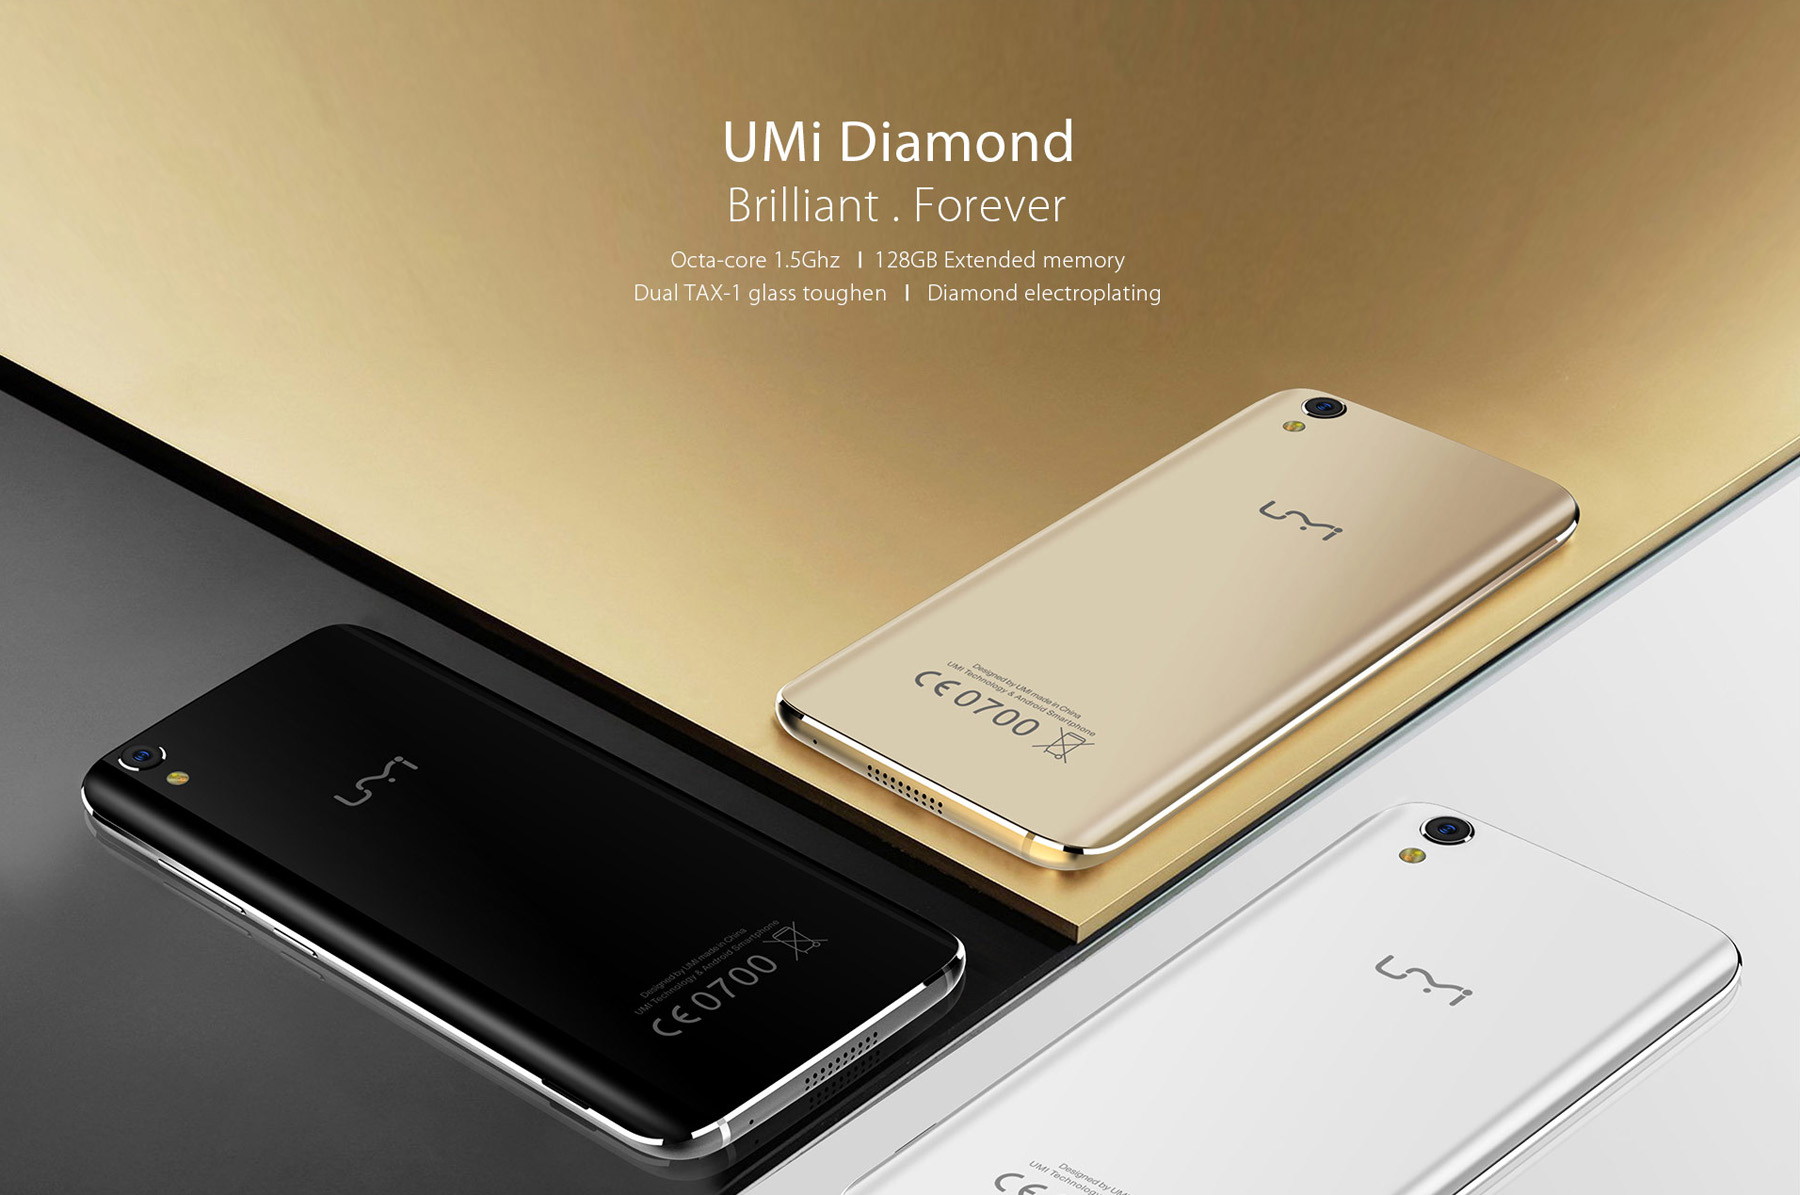 UMi Diamond 4G Smartphone 5.0 inch 2.5D Arc Screen Android 6.0 MTK6753 Octa Core 1.5GHz 3GB RAM 16GB ROM Dual Cameras Gravity Sensor